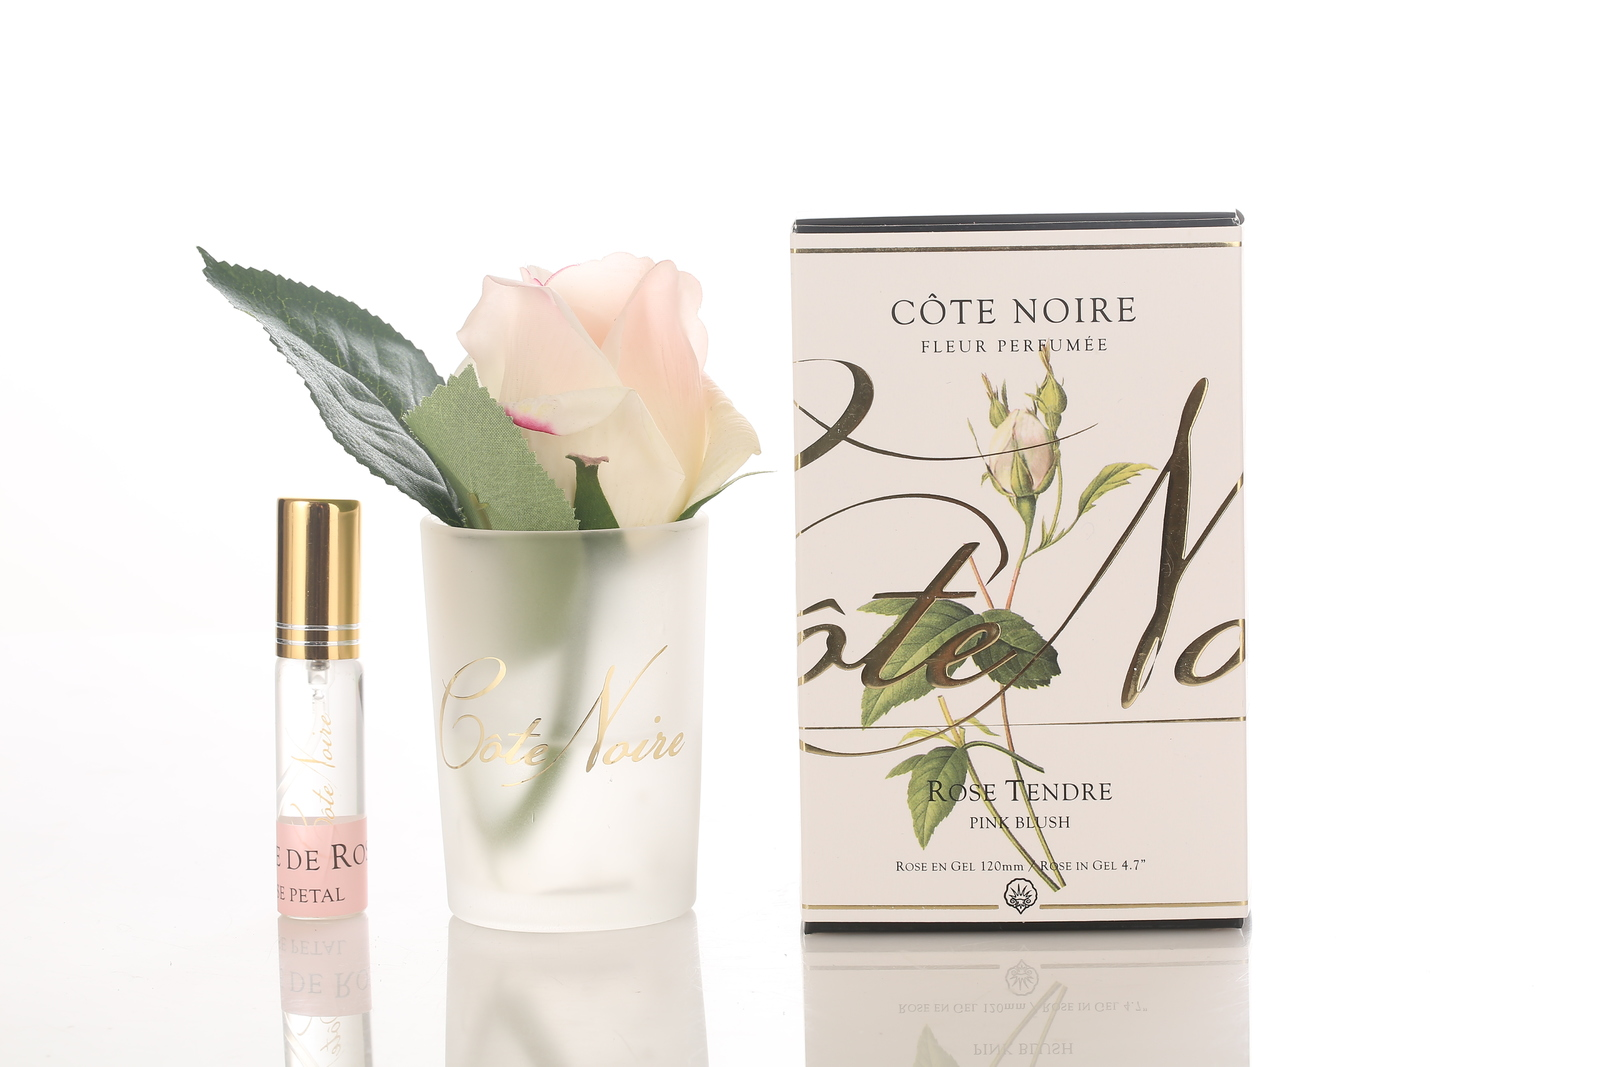 Côte Noire Perfumed Natural Touch Rose Bud (Pink Blush - Frost) image